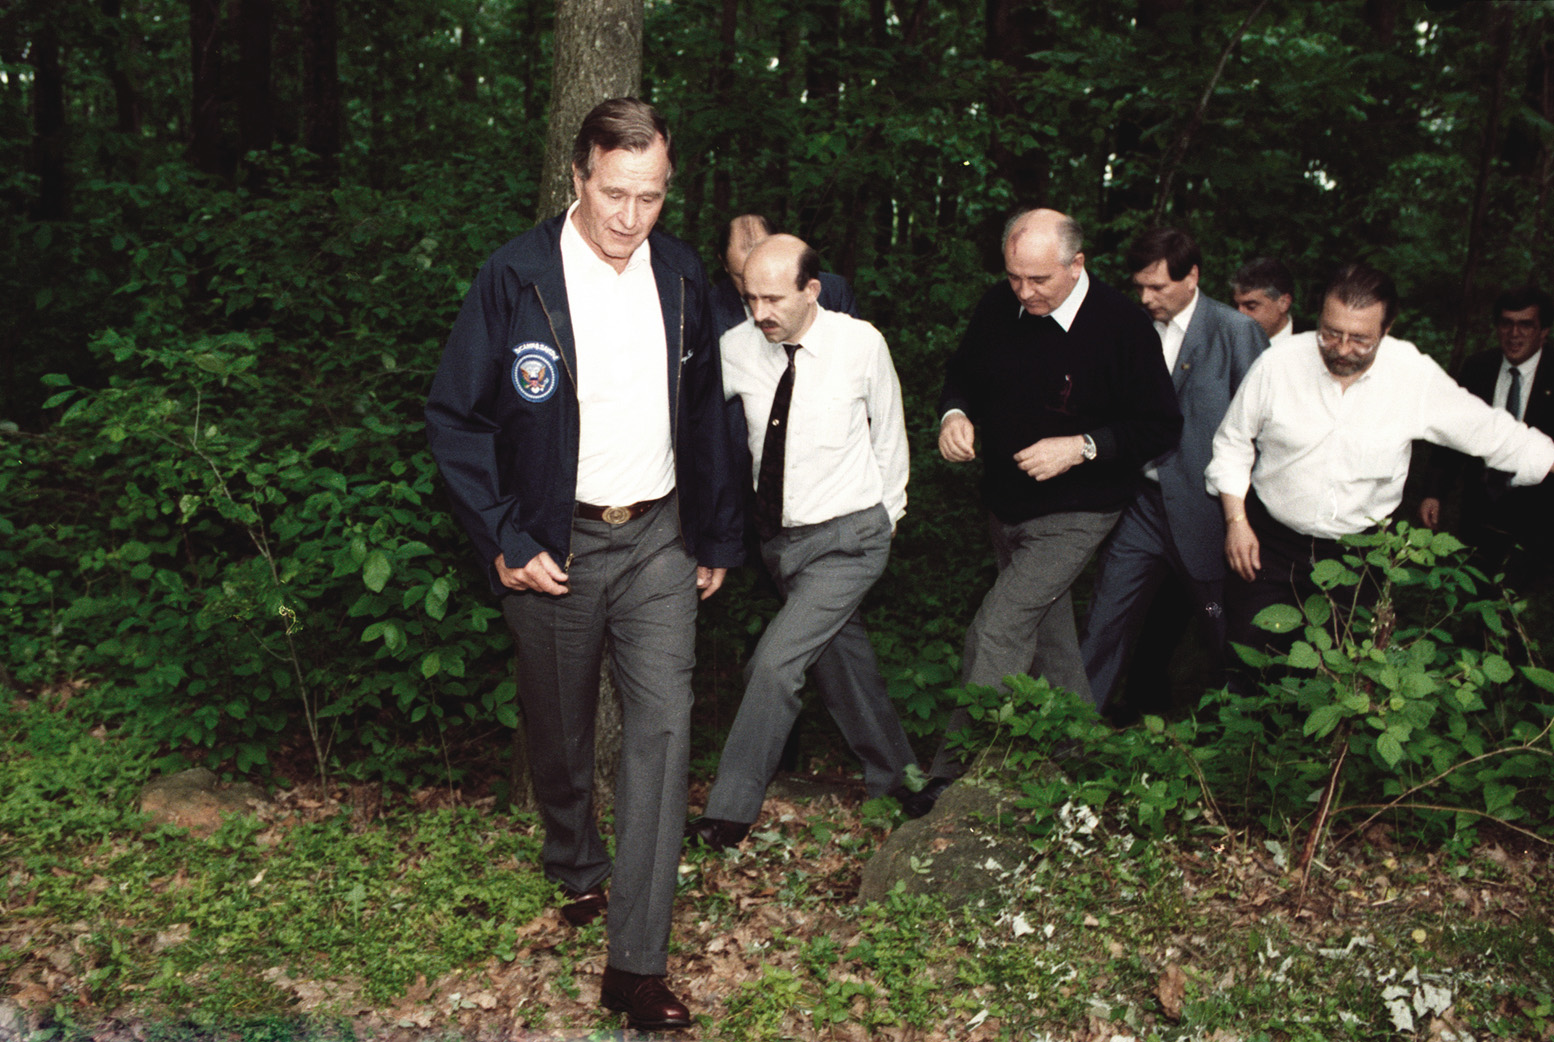 Bush, Gorbachev and а coterie of security agents in camp David woods